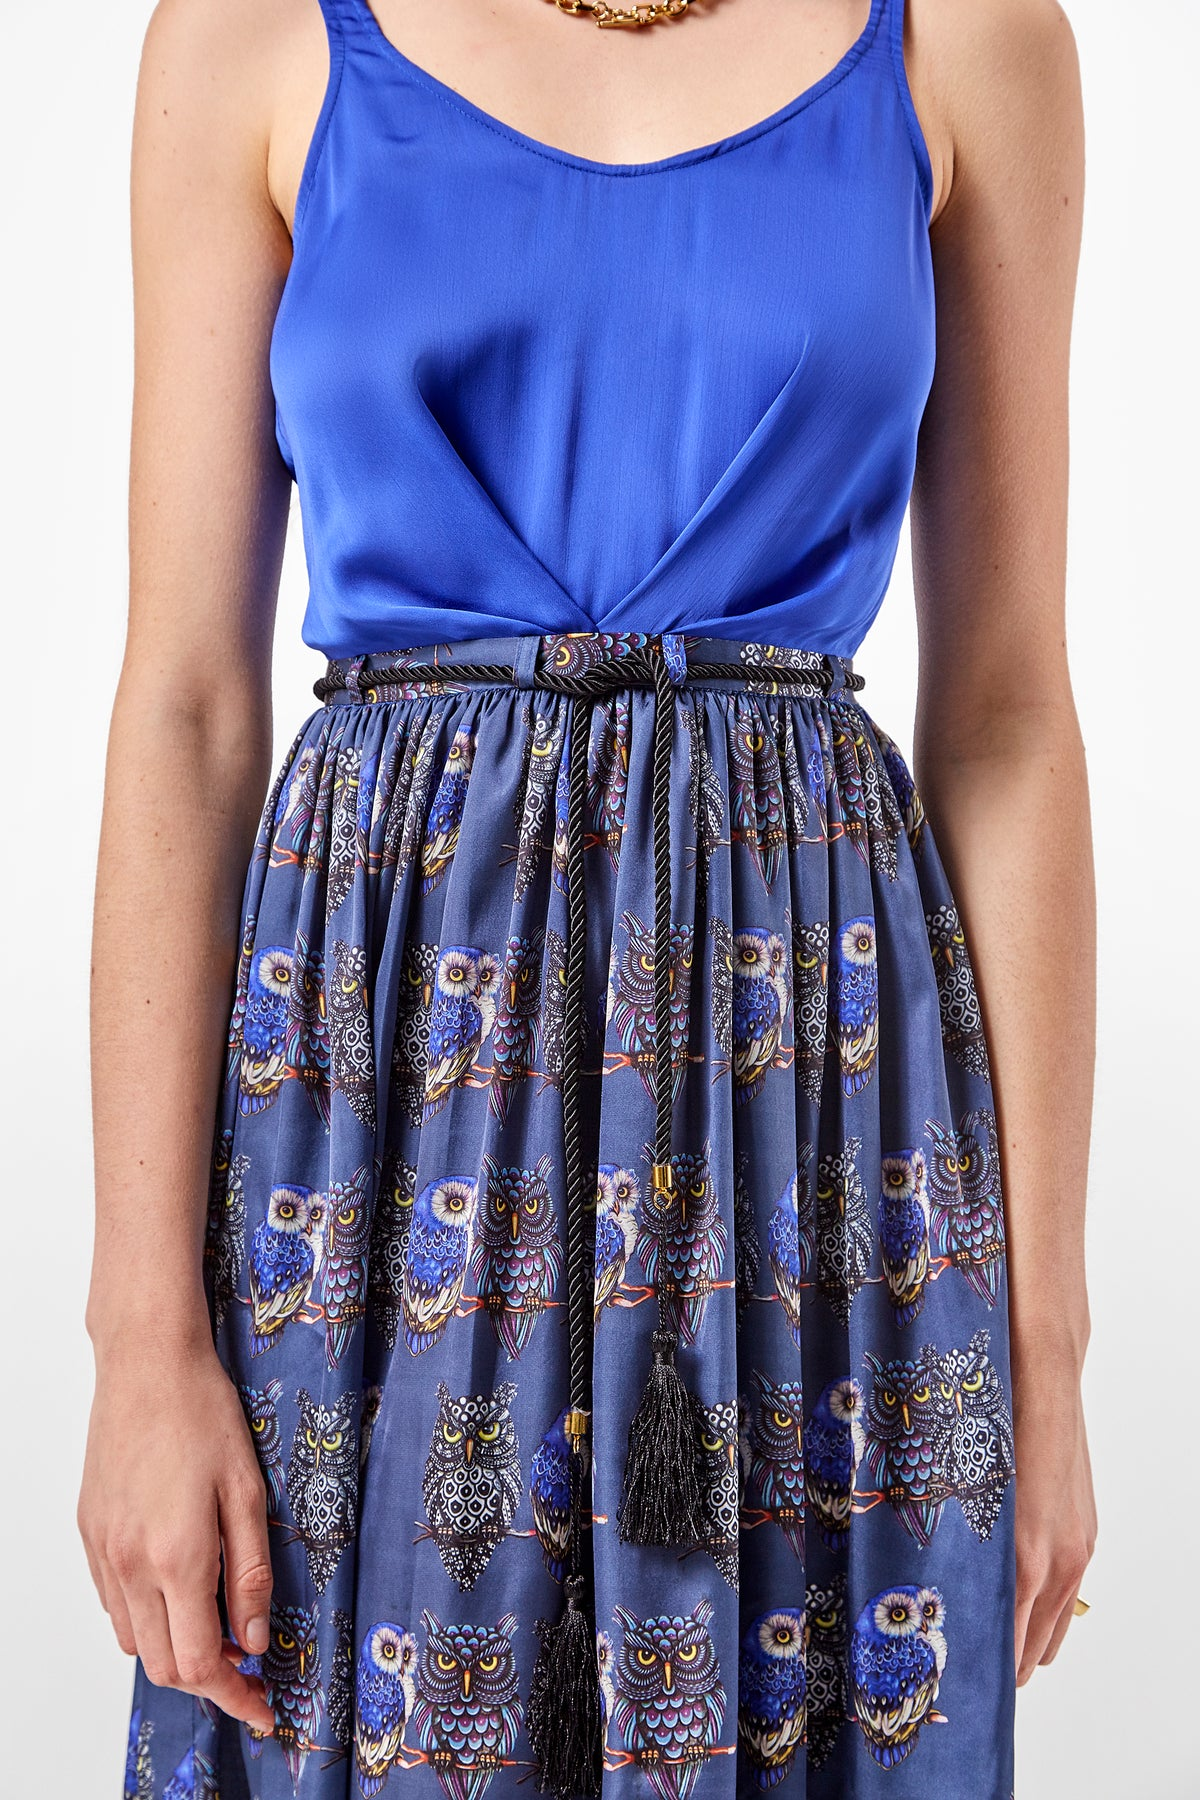 Orso dress in owl print